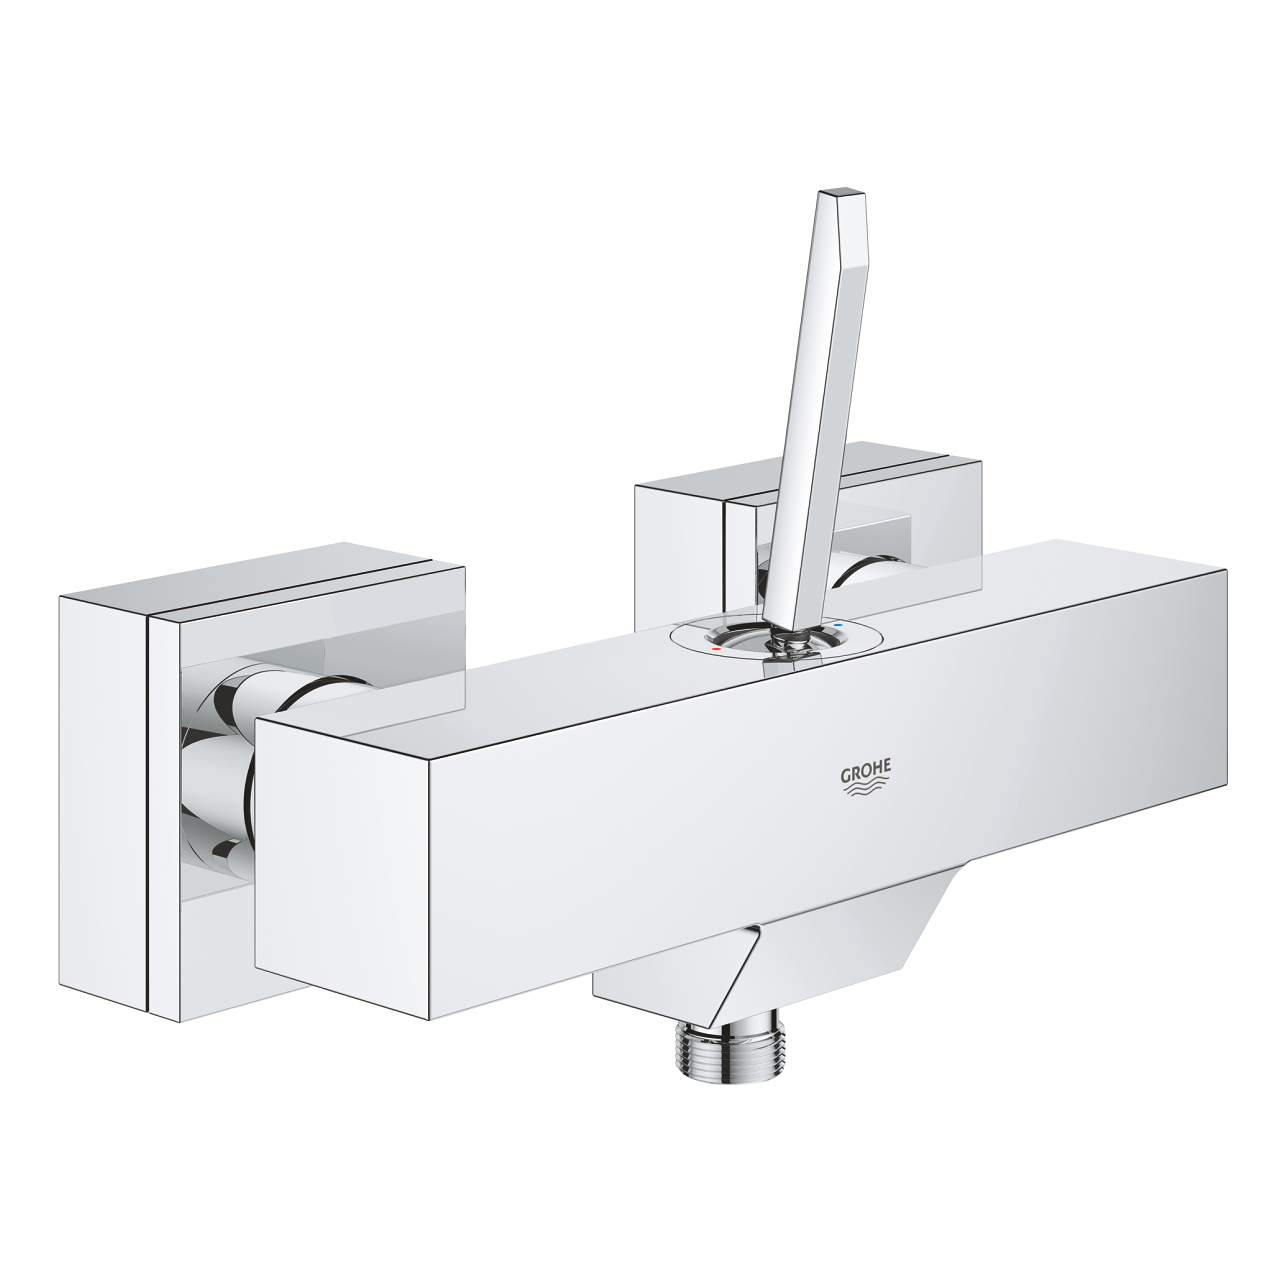 Grohe Eurocube Joy Shower Mixer Tap